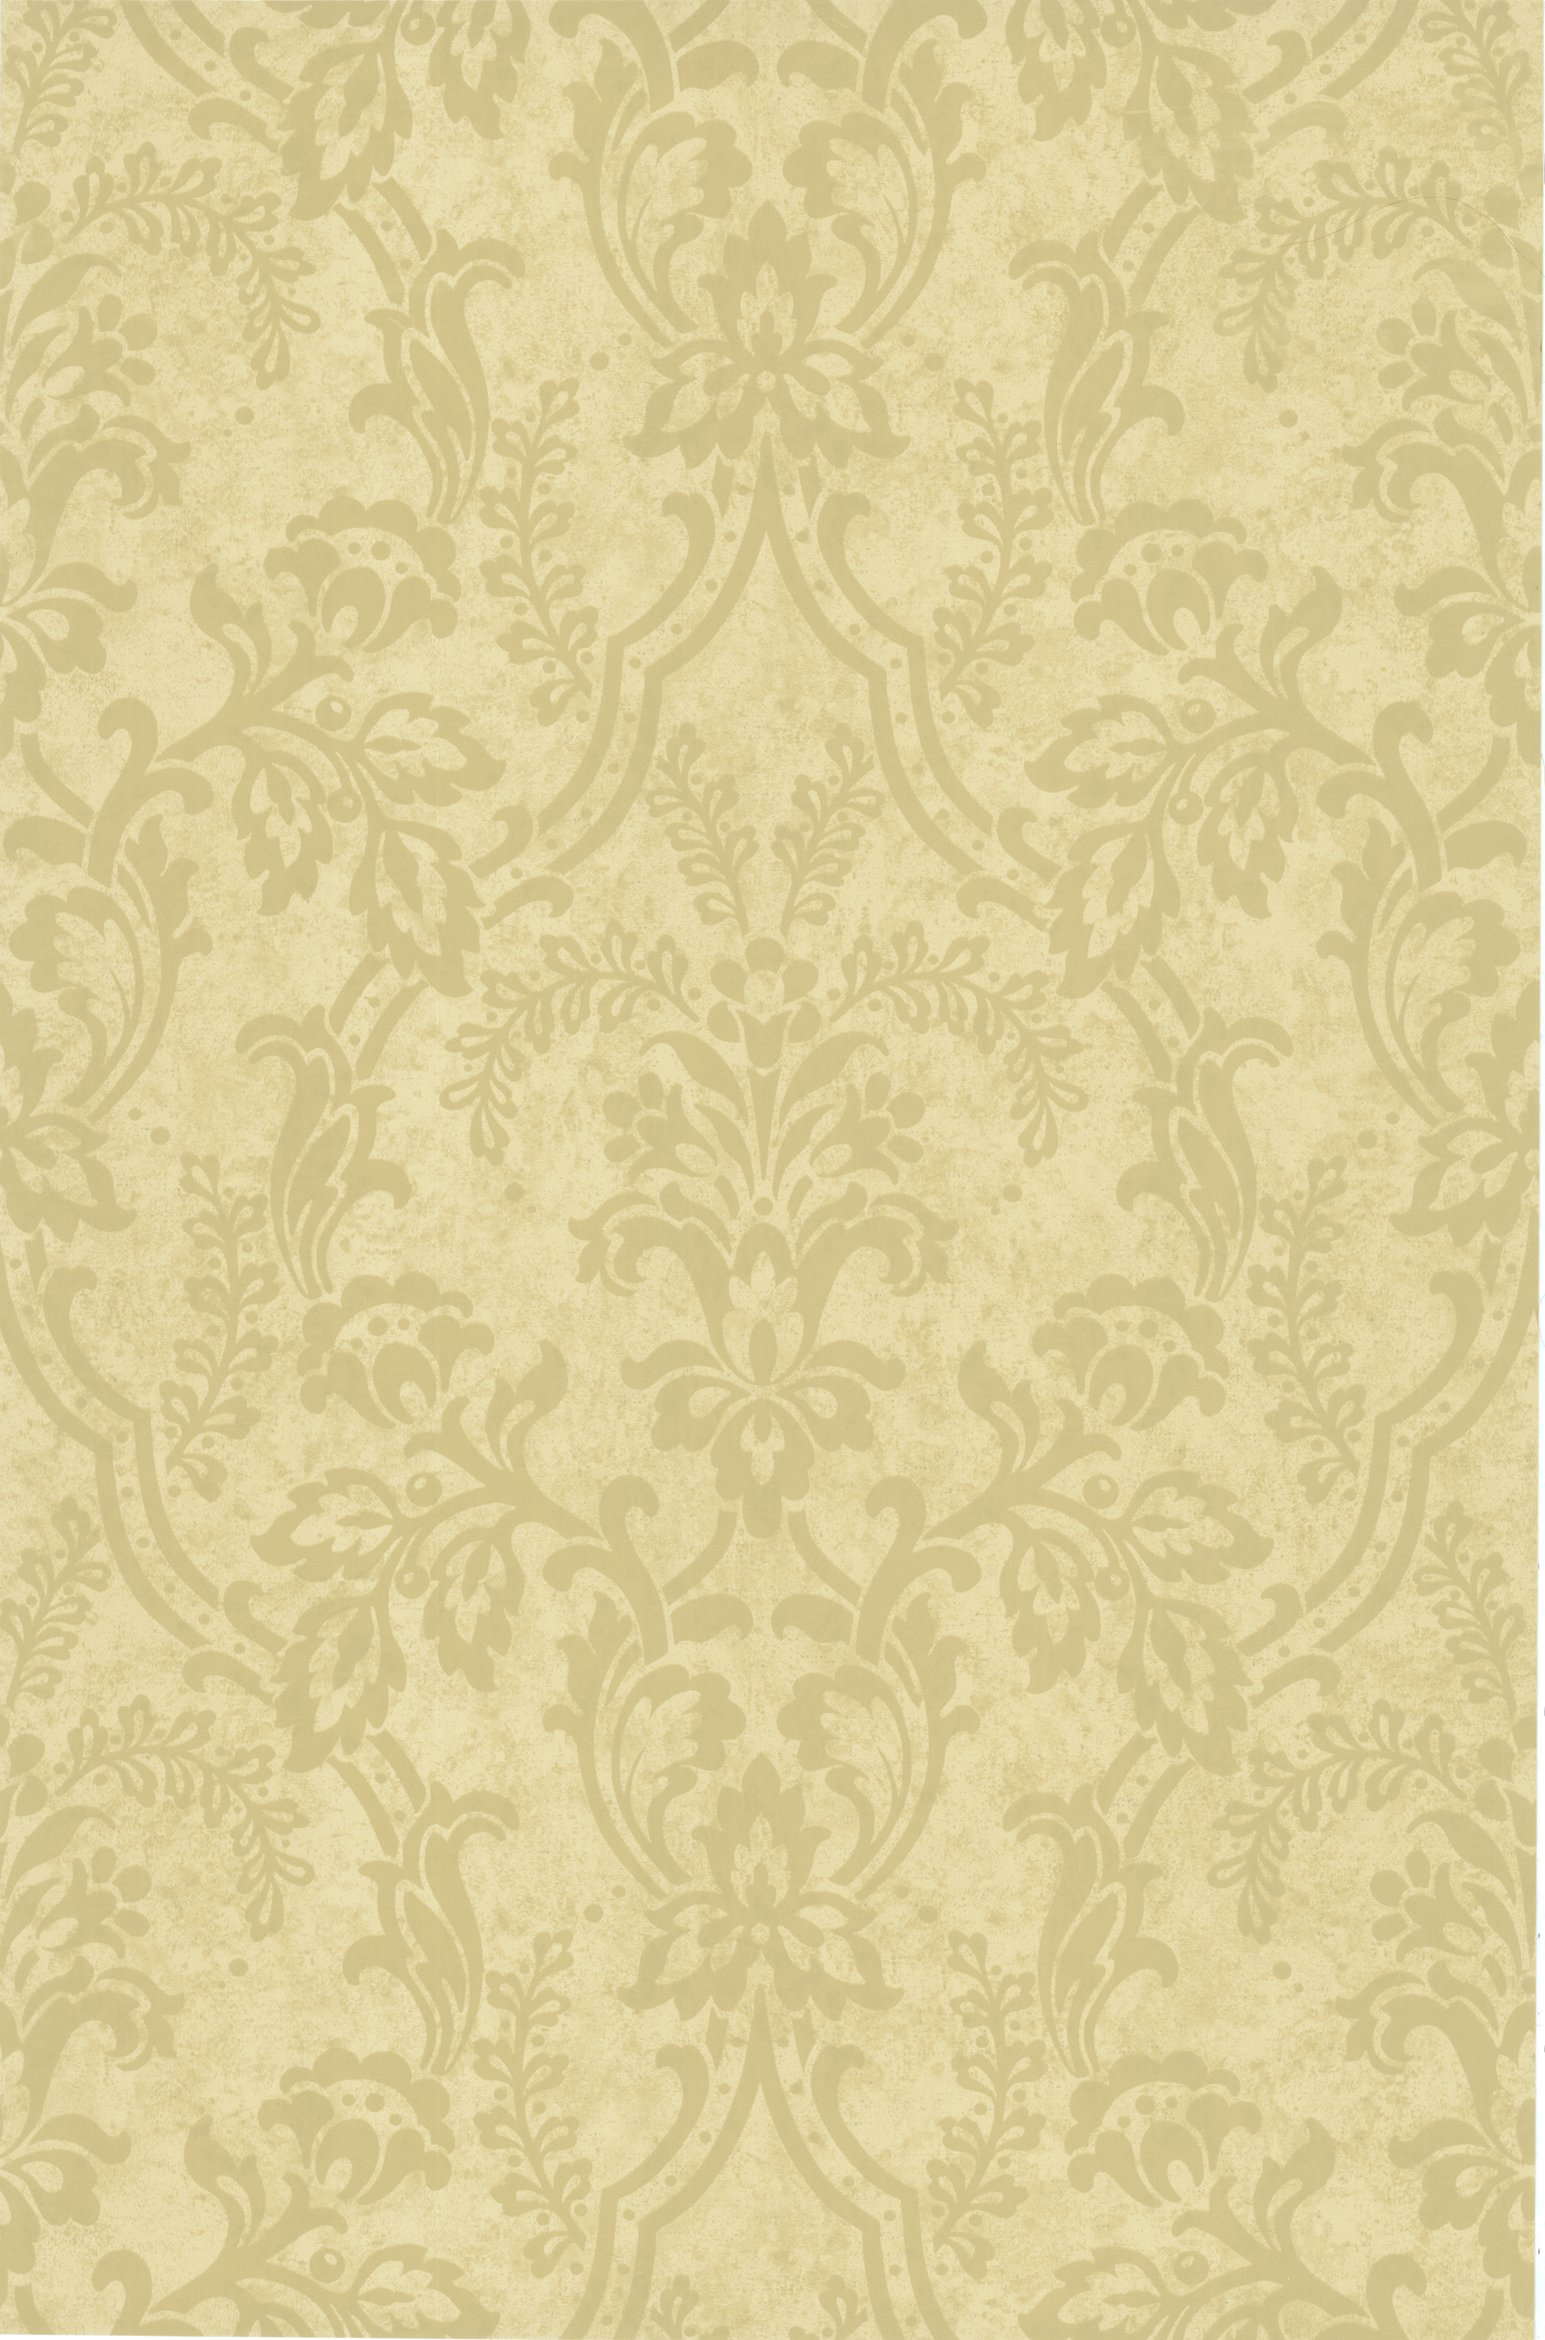 Warner CCP12118 Andrea Ale Ornate Ogee Wallpaper, Bronze by Warner Manufacturing